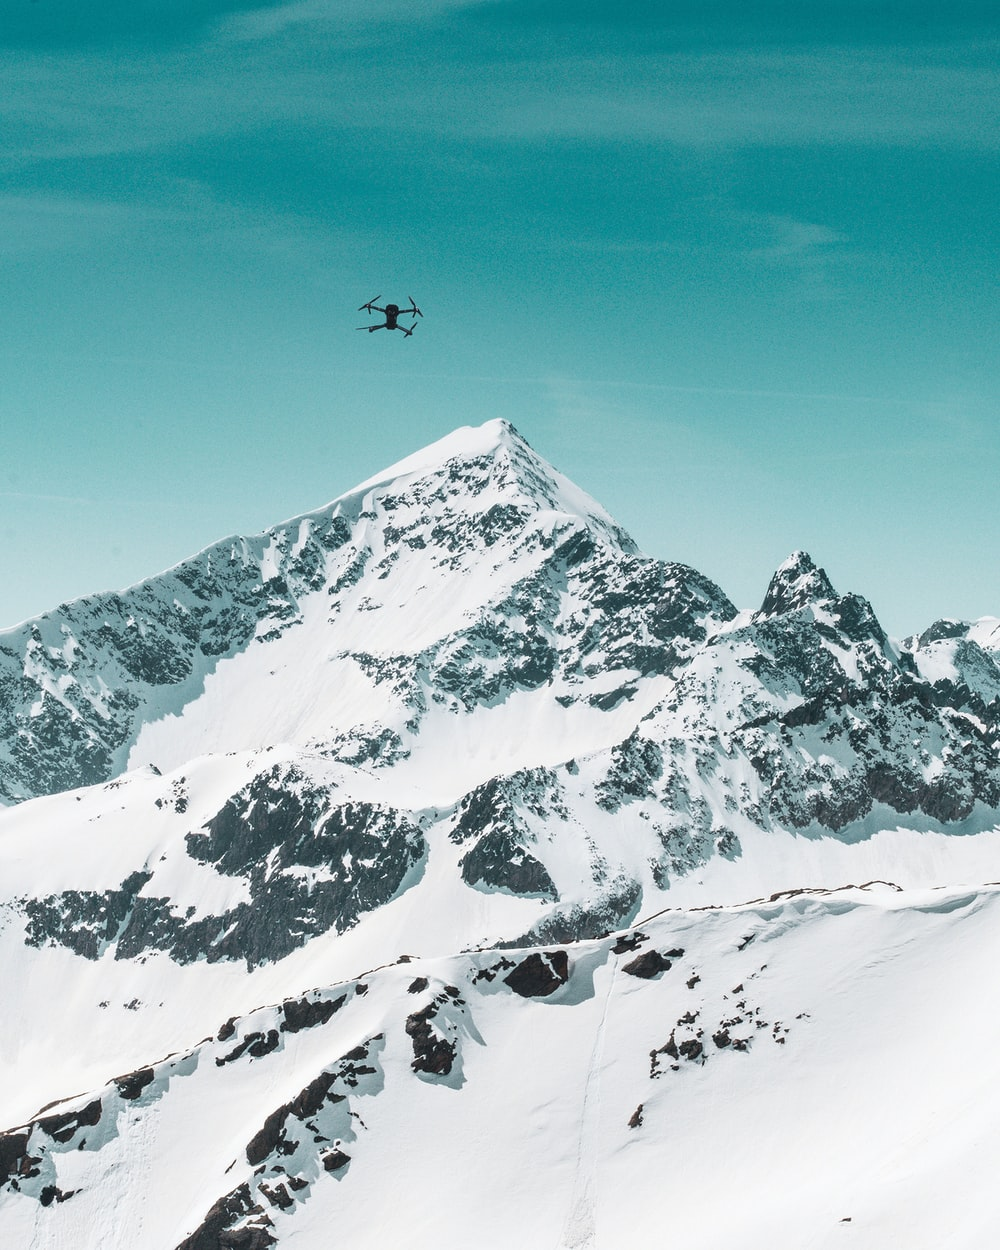 black quadcopter drone on air under mountain covered with snow